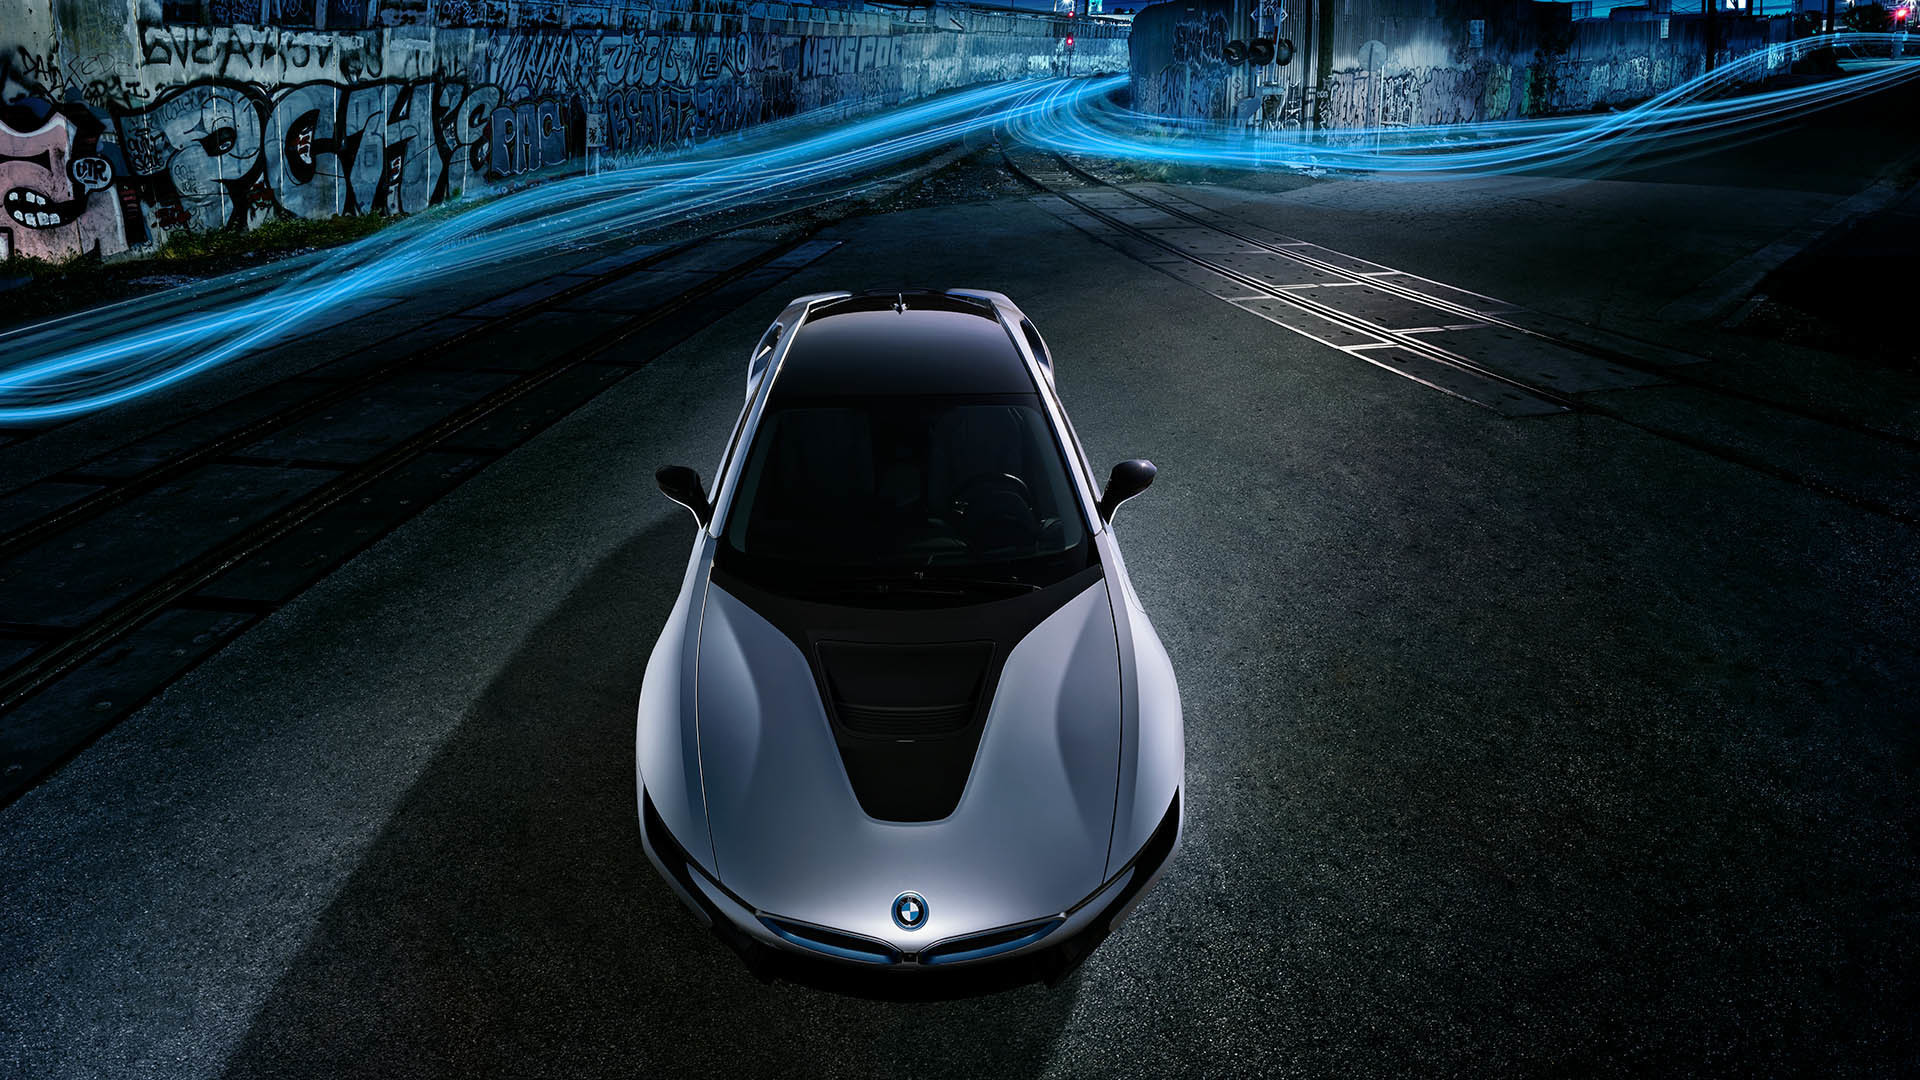 dw_1703_bmw_i8_shot_03_road_bgrnd_comp_fnl_lay_rgb_1920pxl